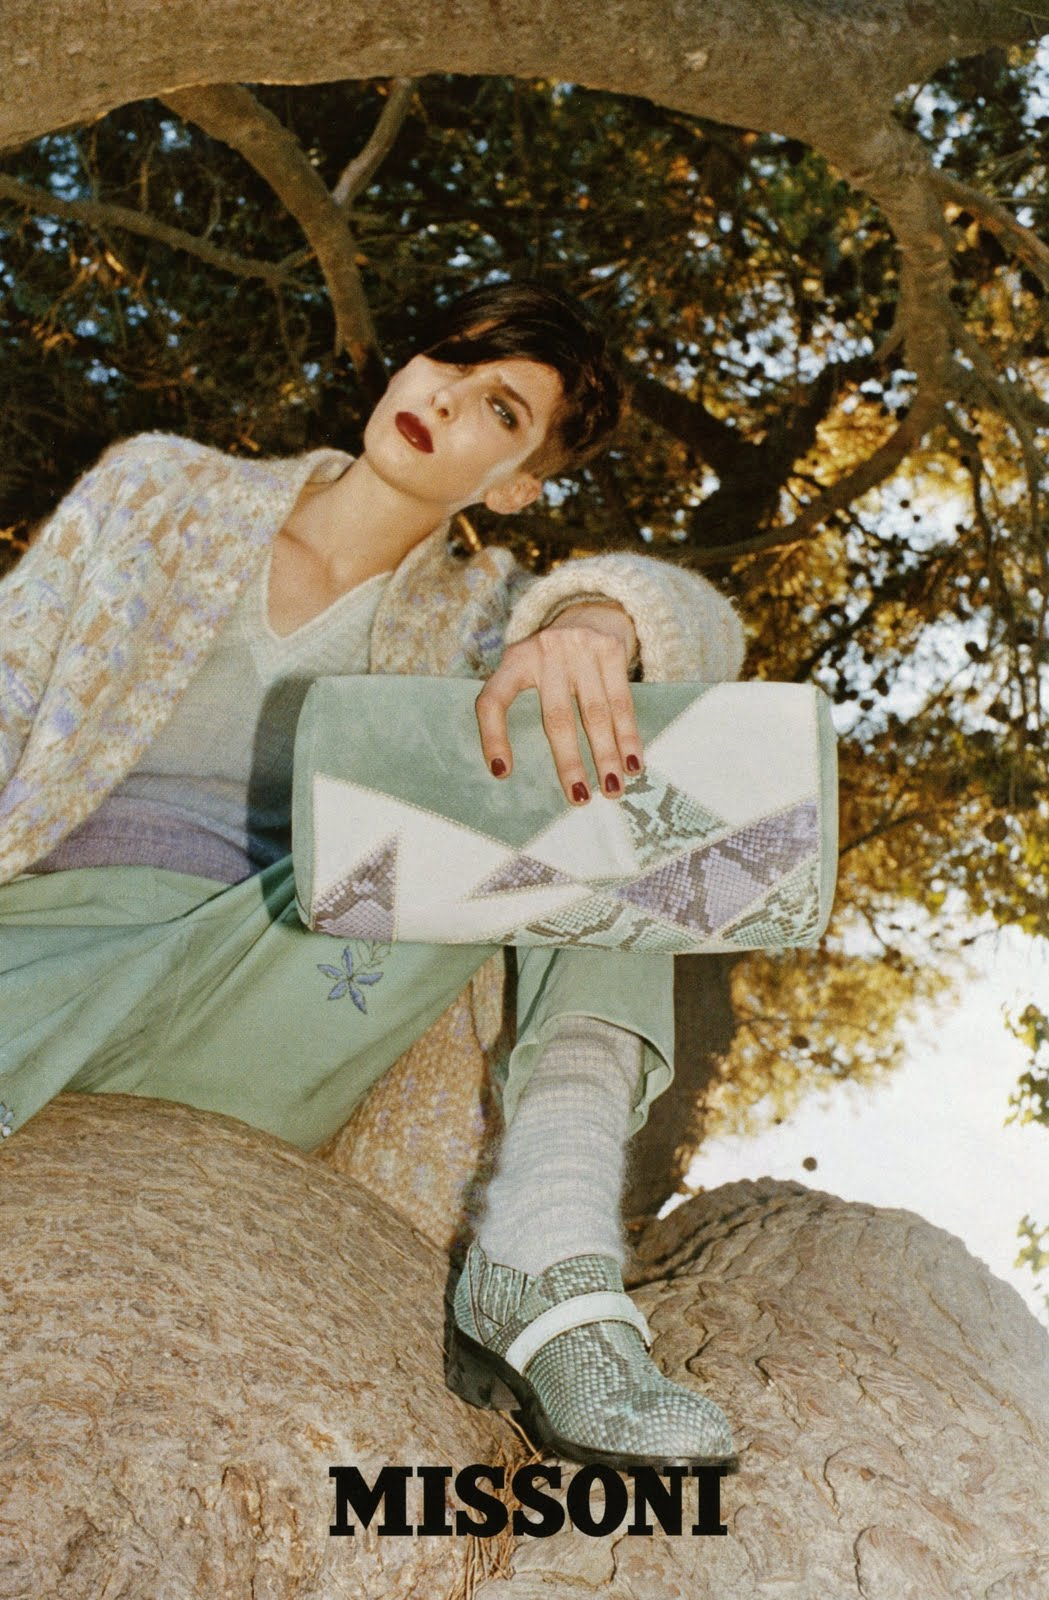 Missoni+fall+2011+campaign+photo+Juergen+Teller+model+Kristina+Salinovic+Women+Management+NYC+Blog